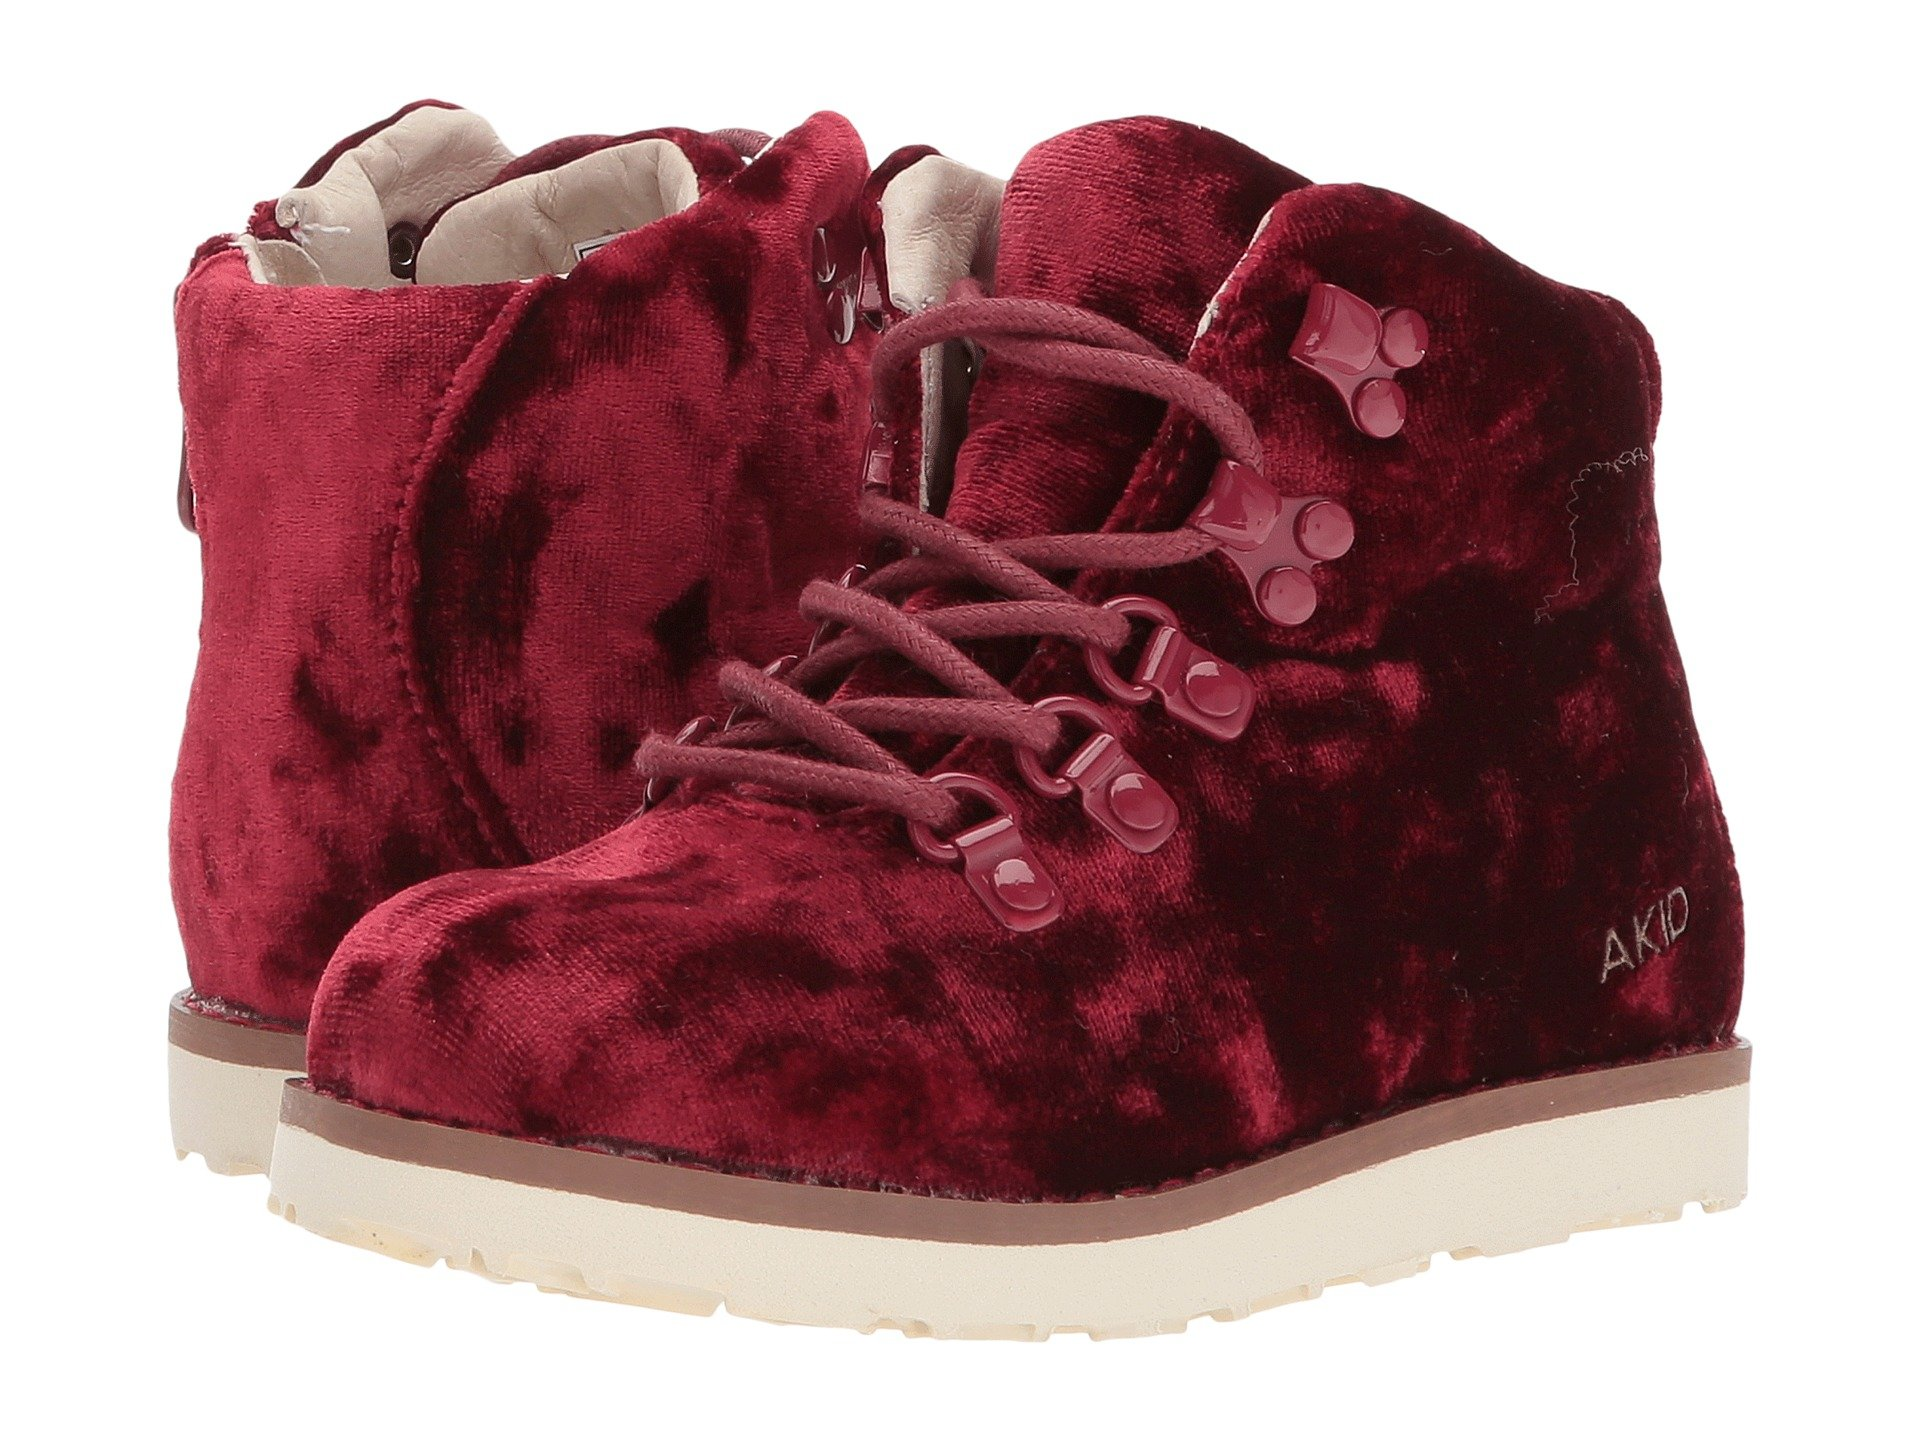 Boots, Red, Girls | Shipped Free at Zappos